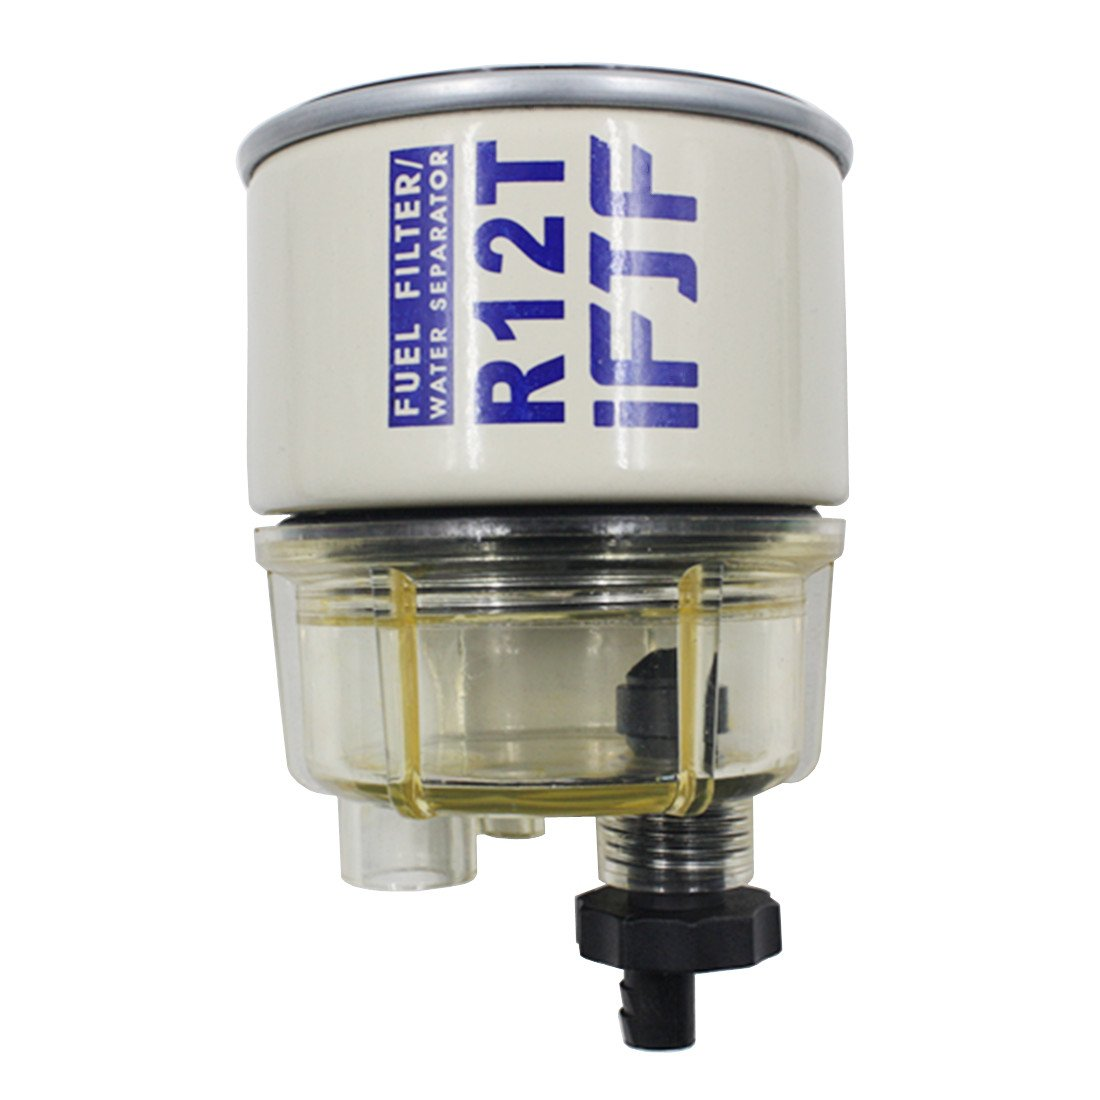 Ifjf Automotive Replacement Filter And Nylon Collection Bowl Of R12t Engine Fuel Filters Water Separator 120at